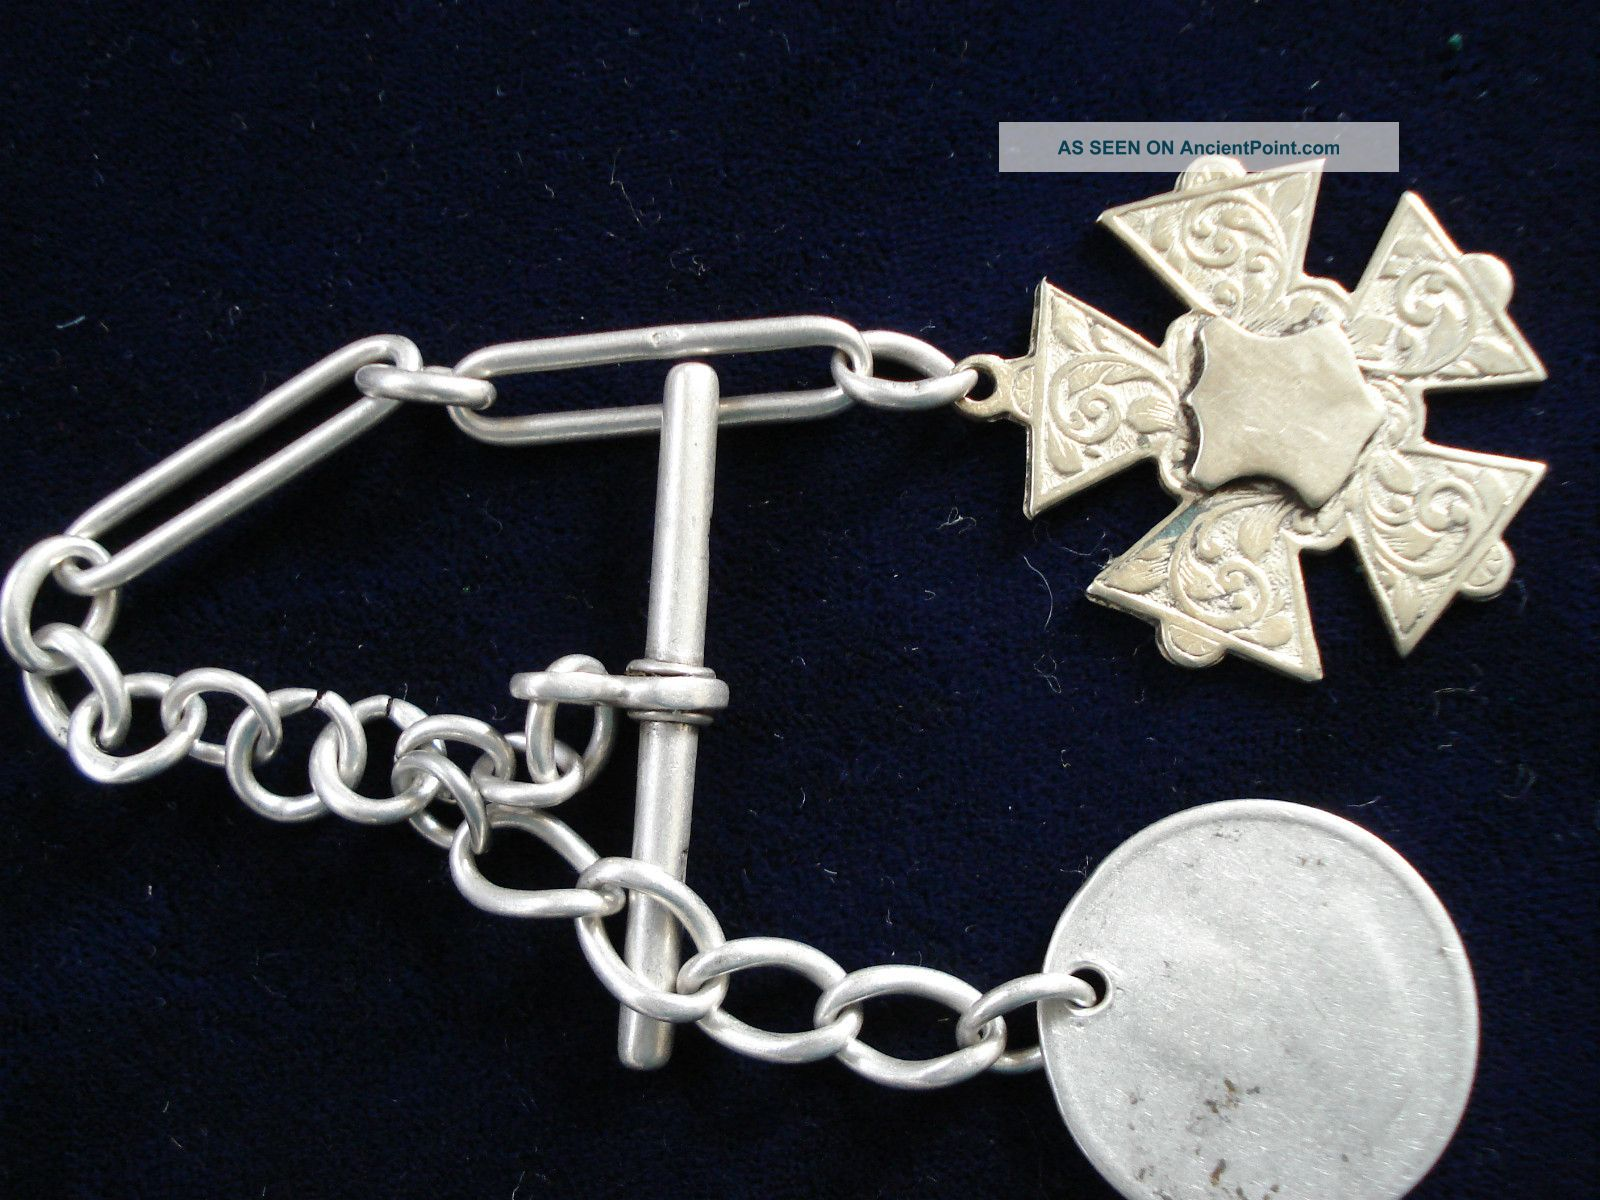 Section Of Silver Watch Chain With Worn Coin And Fob.  20 Grams Pocket Watches/ Chains/ Fobs photo